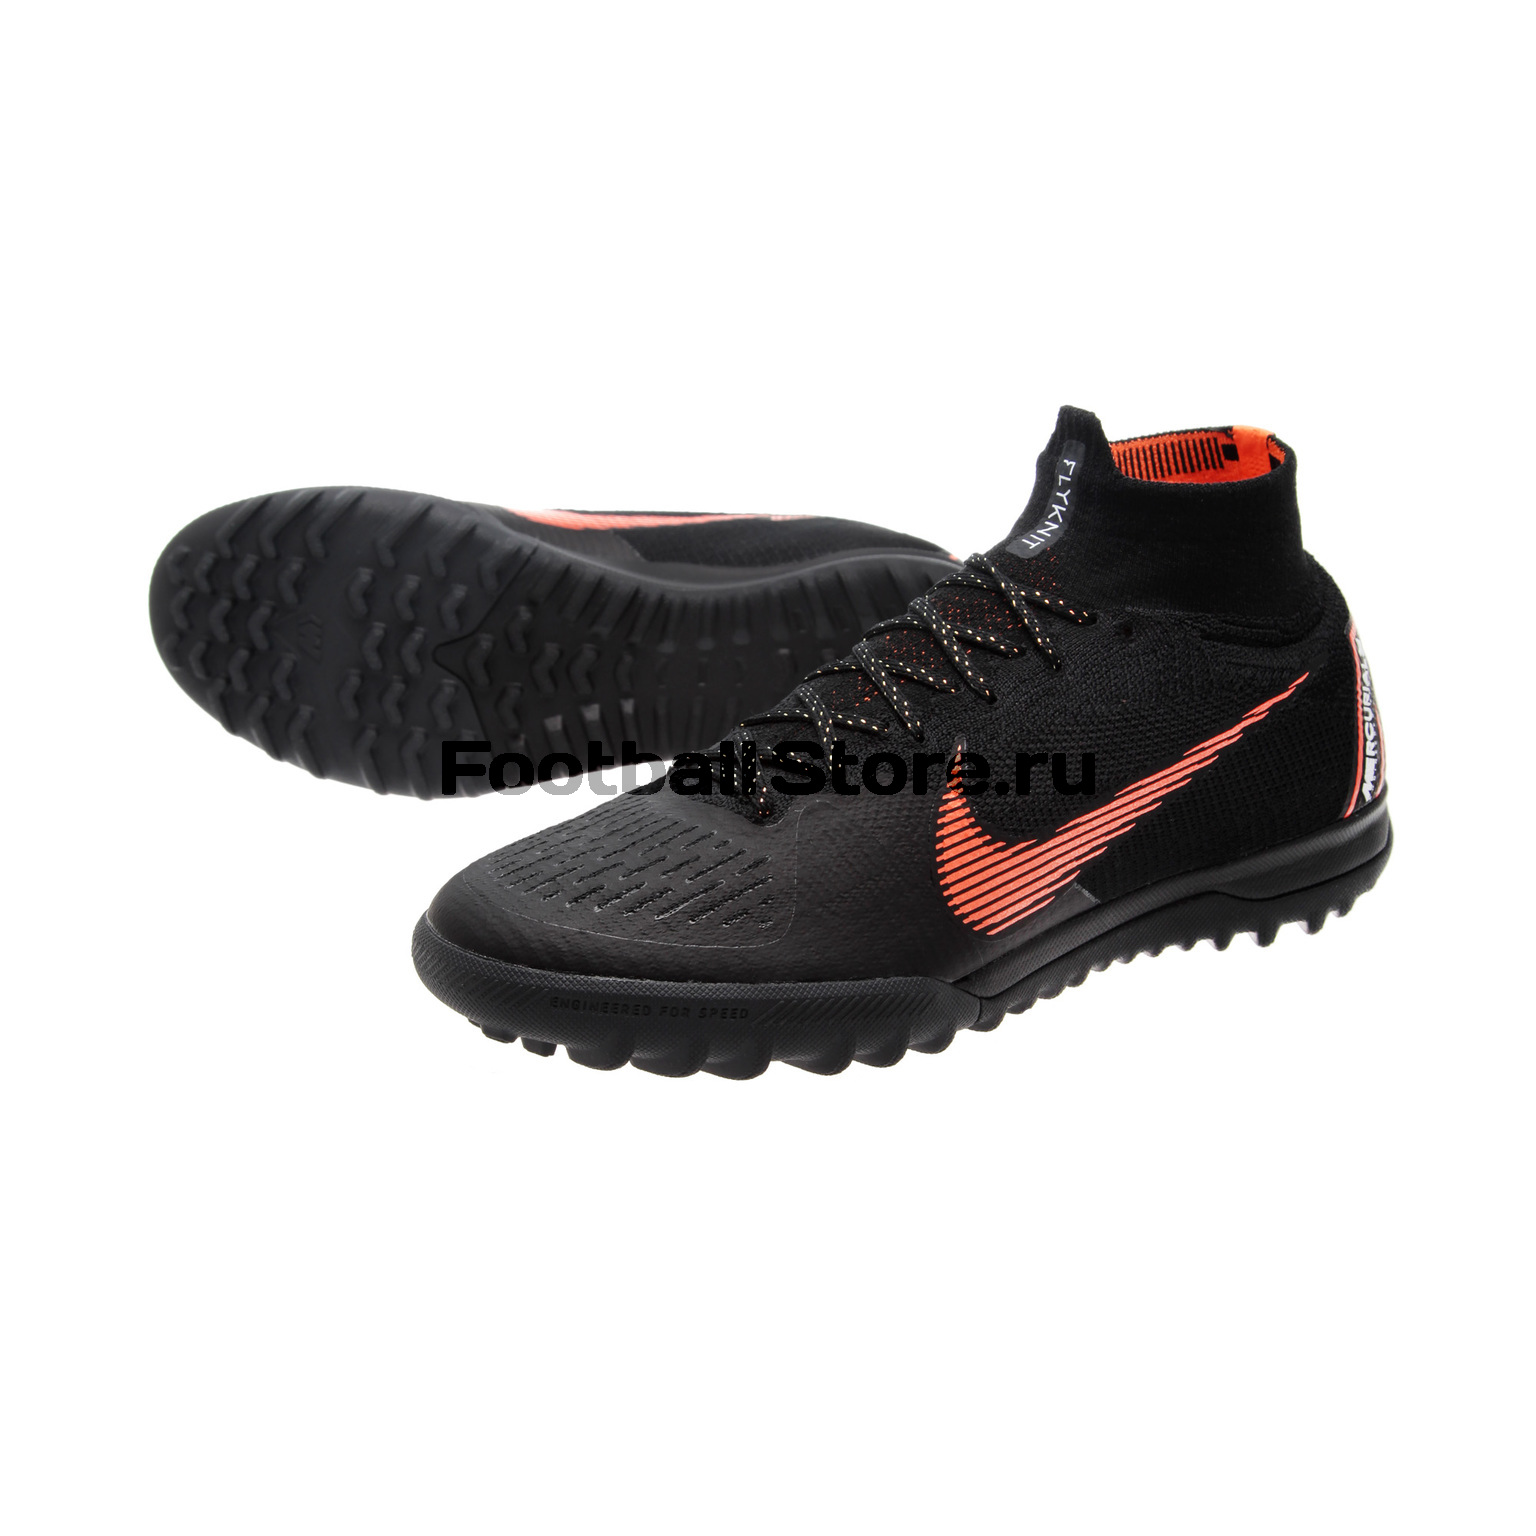 Шиповки Nike Superfly X 6 Elite TF AH7374-081 чулок д щитков nike guard lock elite sleeve su12 se0173 011 m чёрный